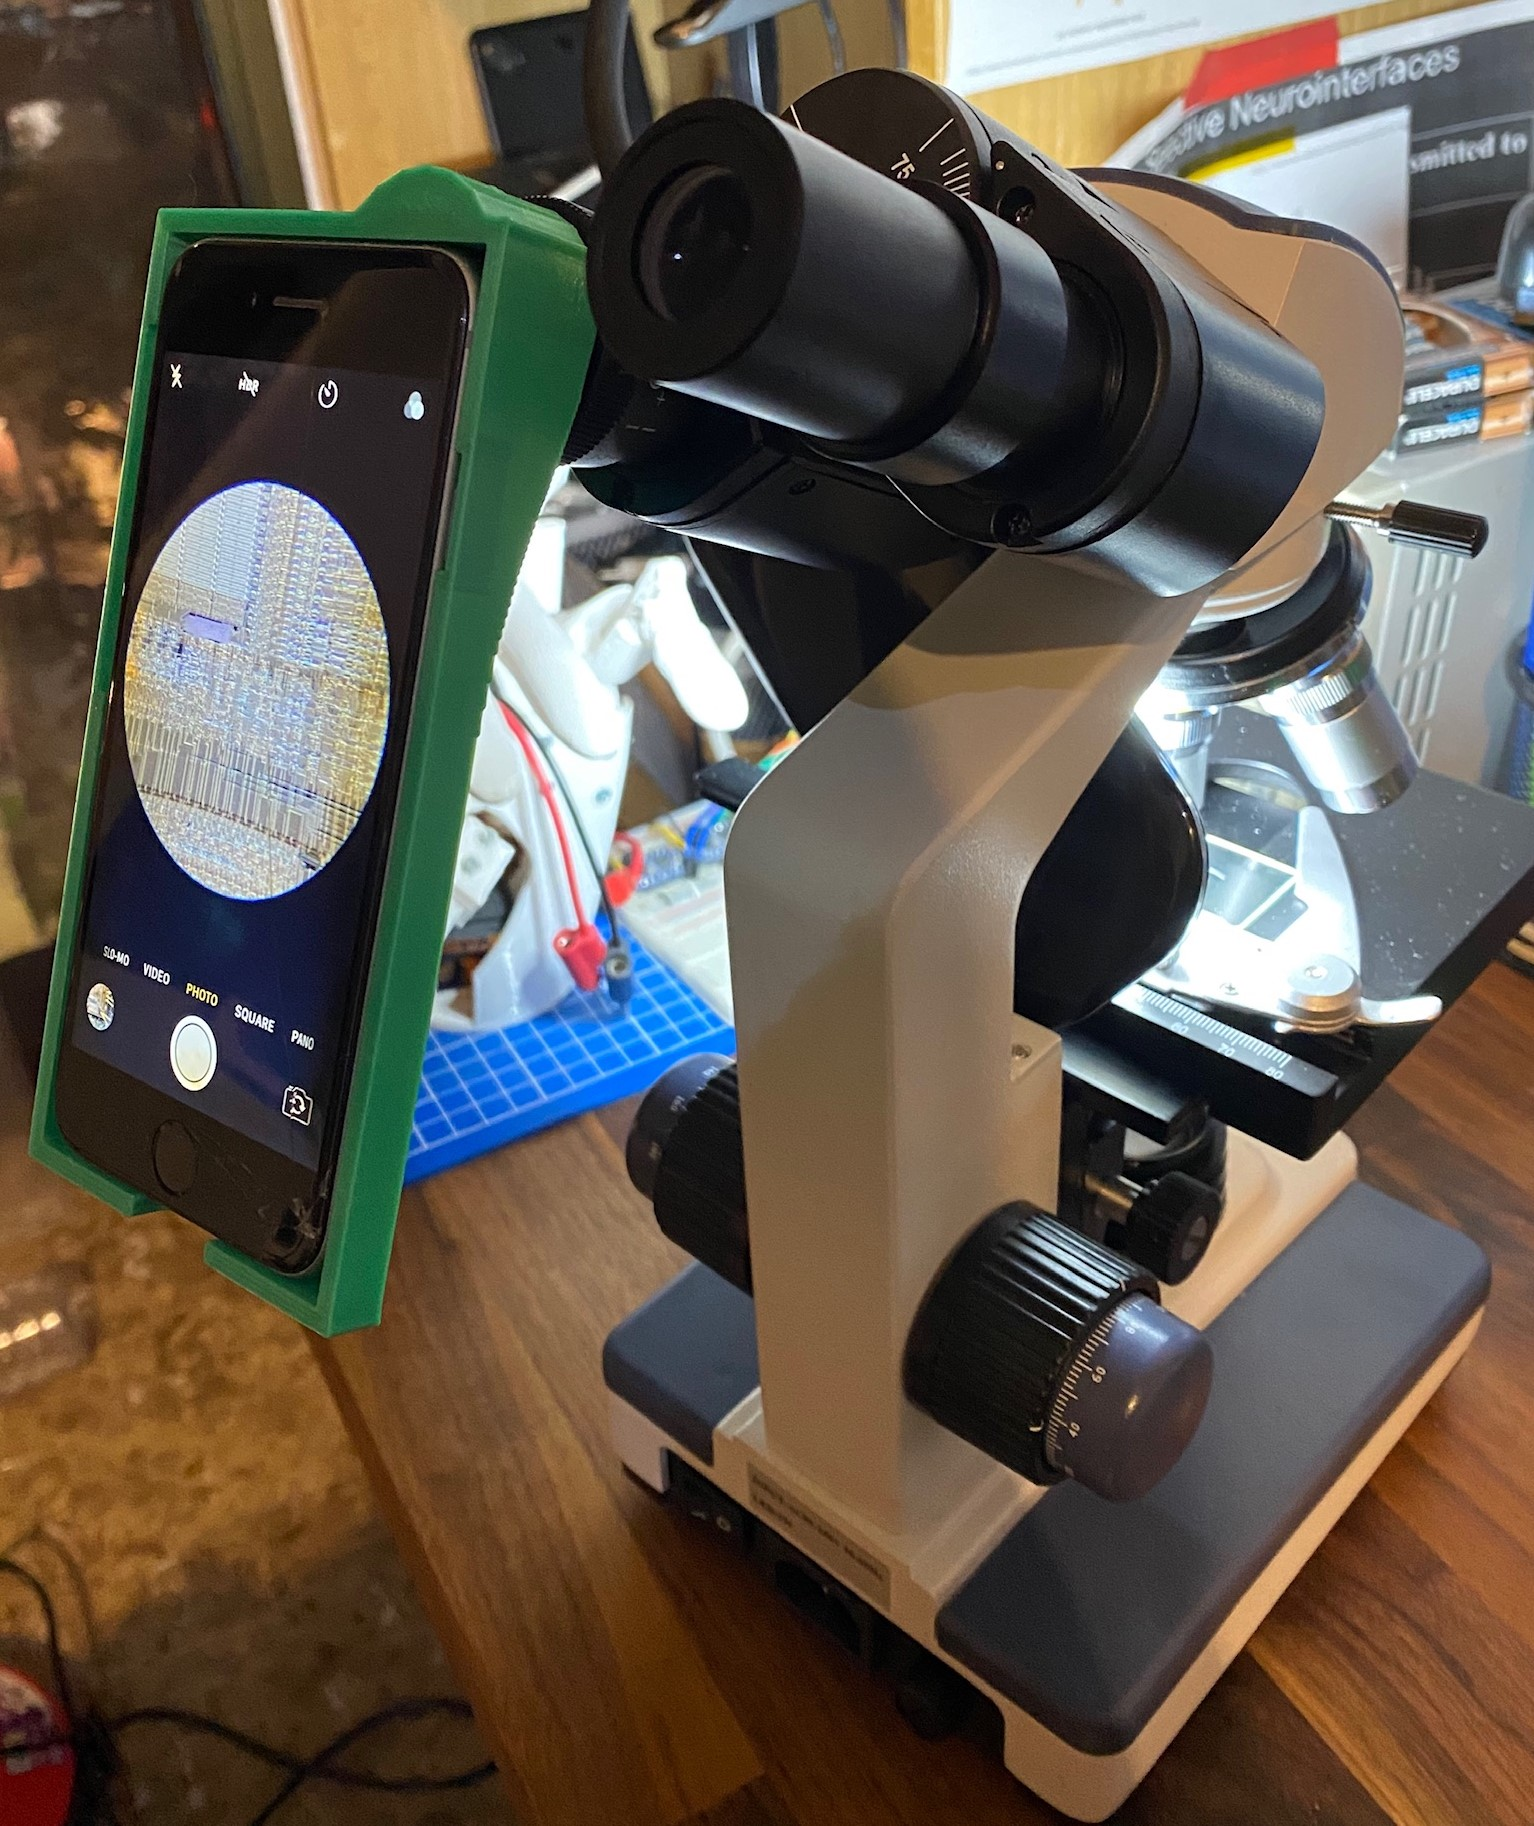 iPhone-microscope adapter in action